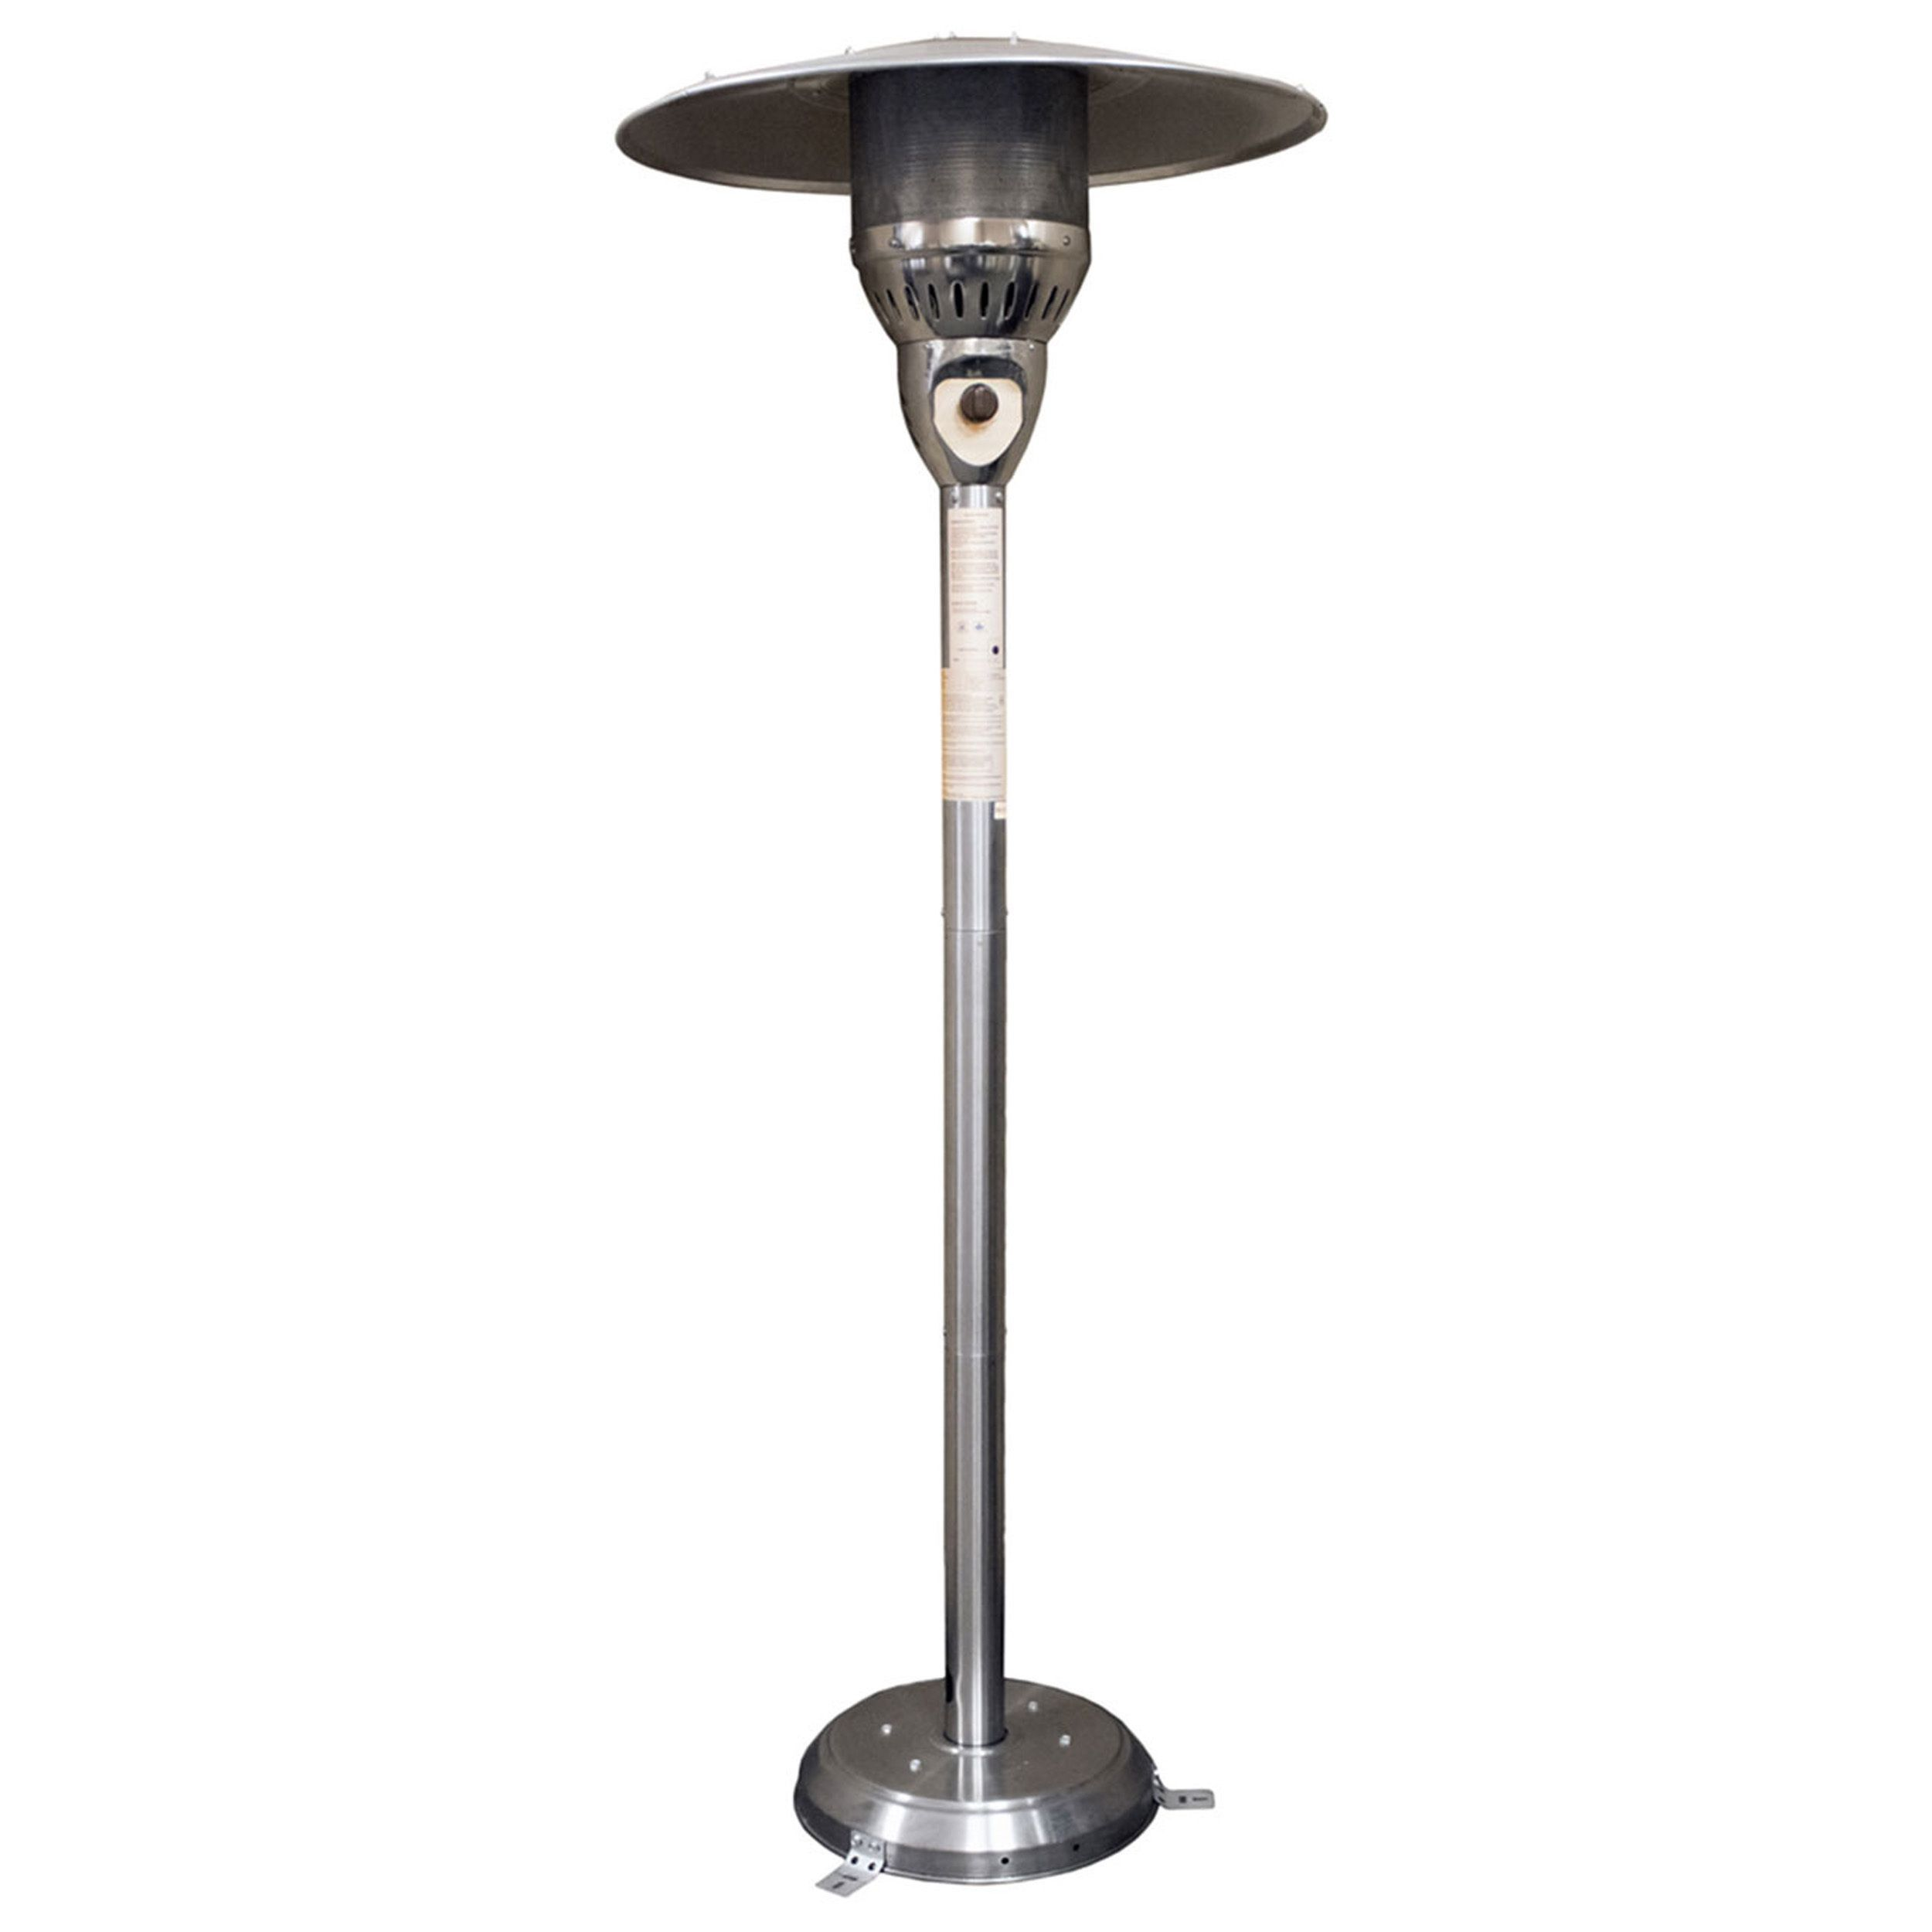 Hiland AZ Patio Stainless Steel 85 Inch Gas Outdoor Patio Heater